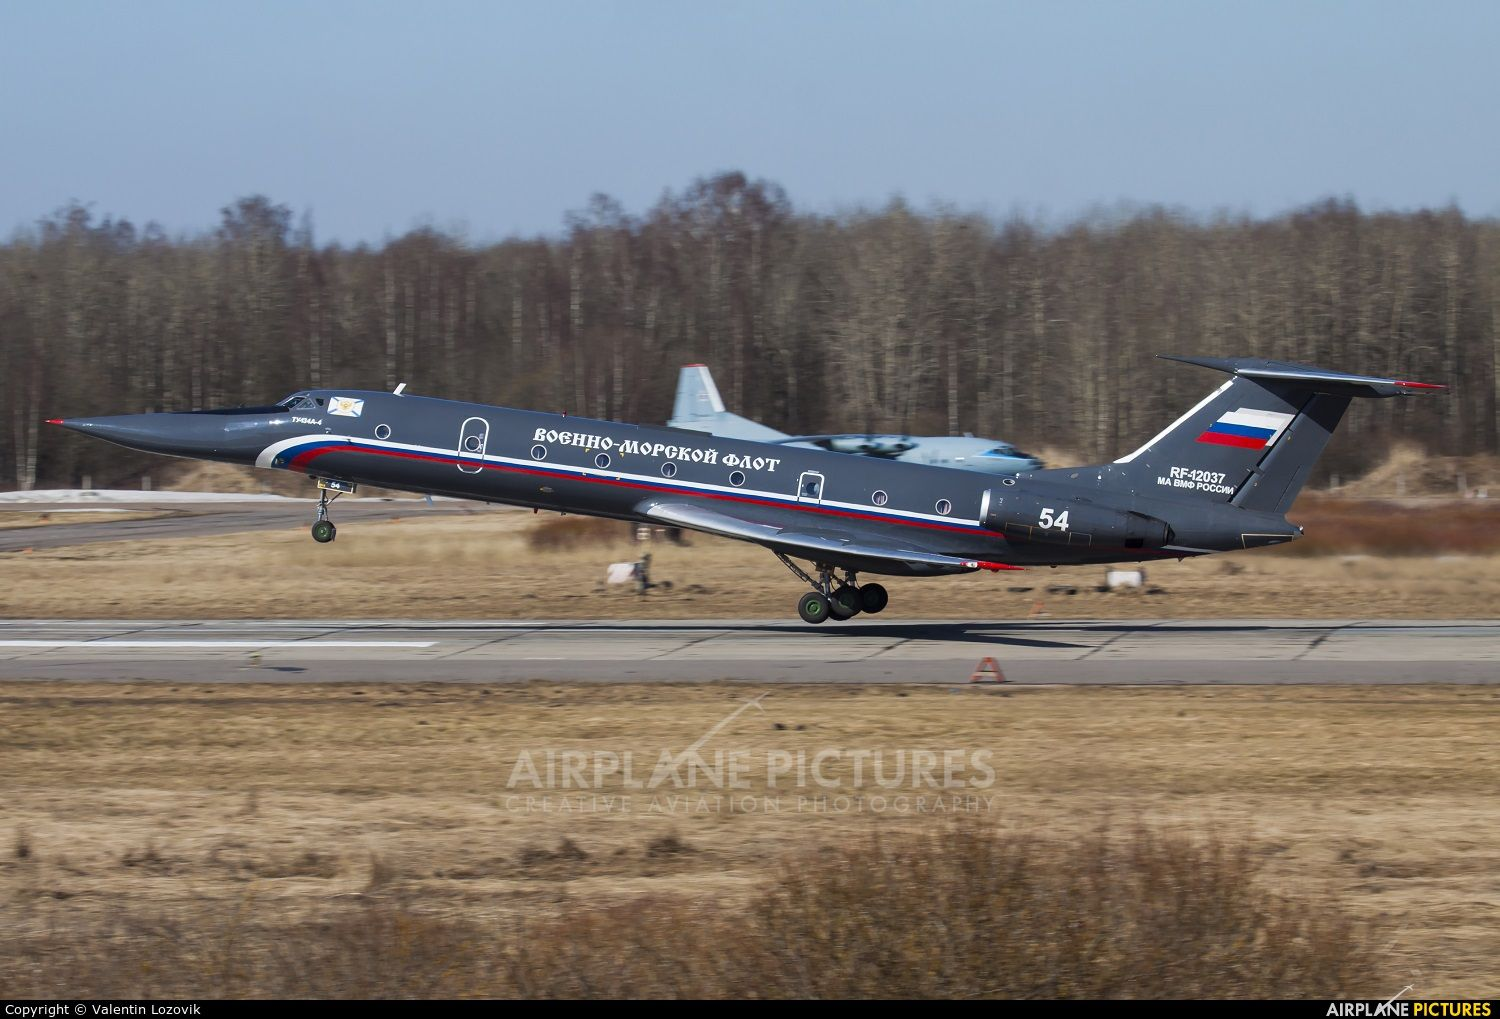 Russia Navy Tupolev Tu134UBL photo by Valentin Lozovik